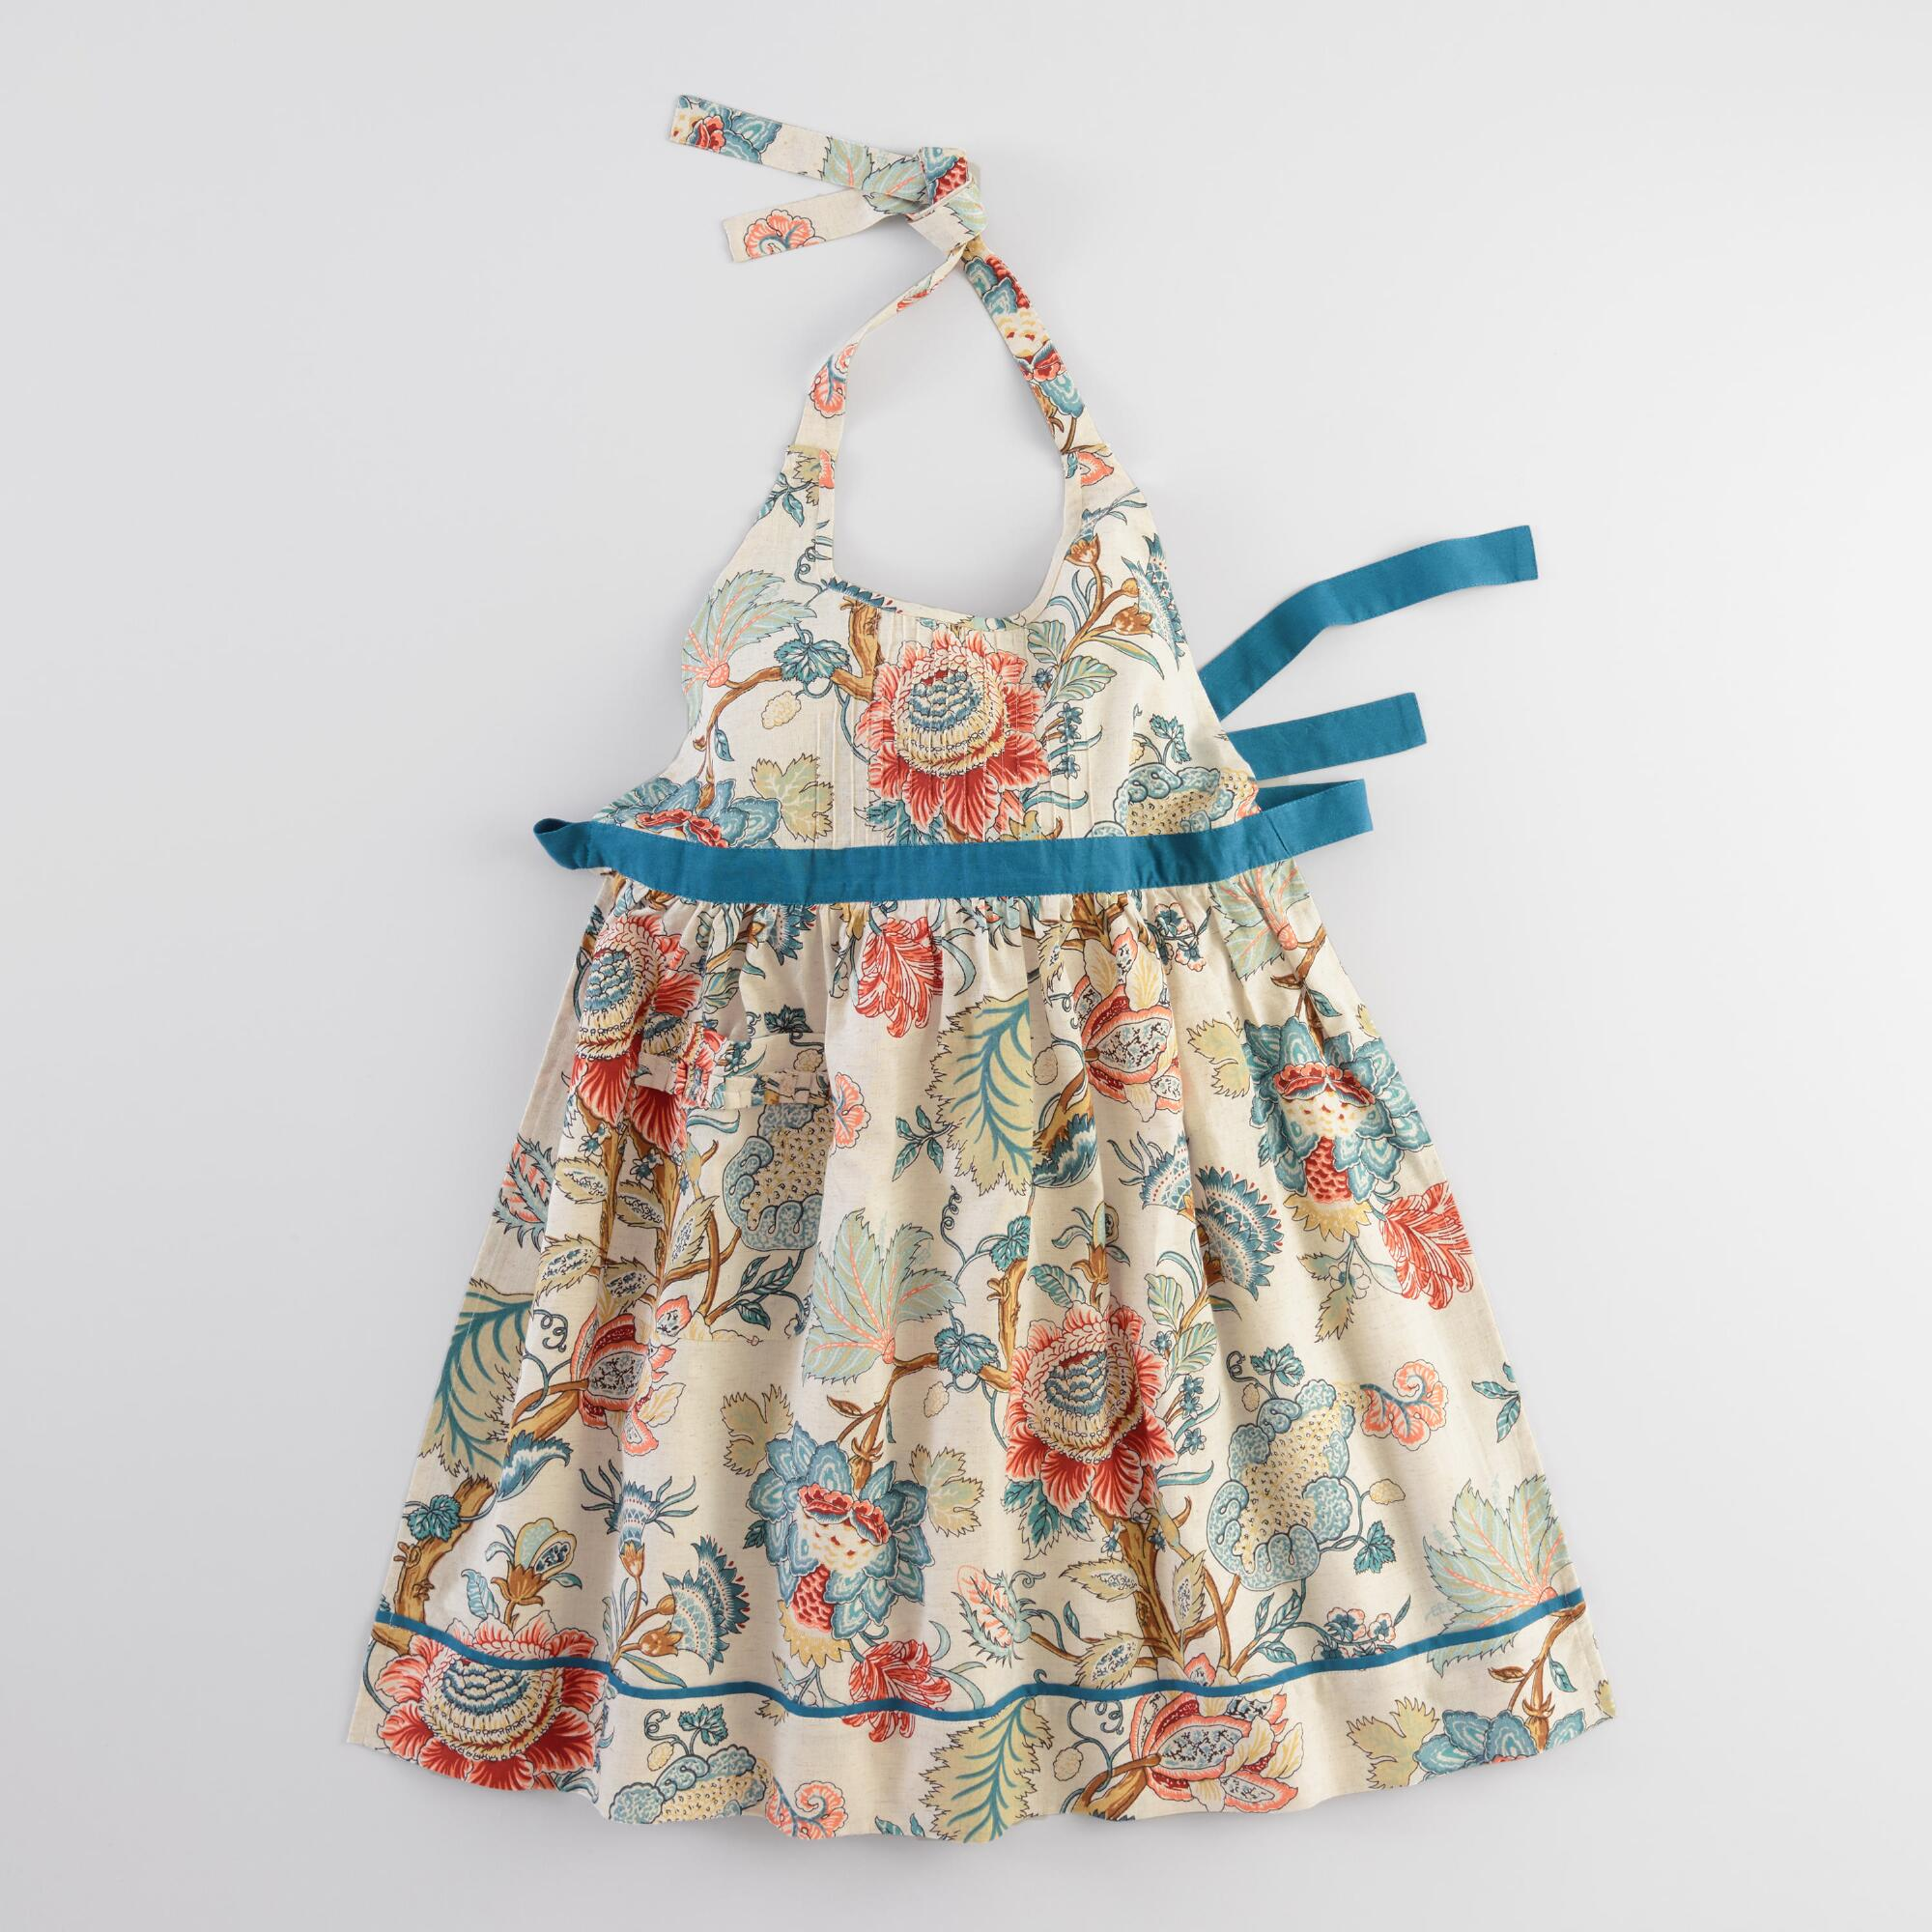 10 Things to Do with Vintage Aprons Blue Palampore Anika Apron - Cotton by World Market $19.99 AT vintagedancer.com